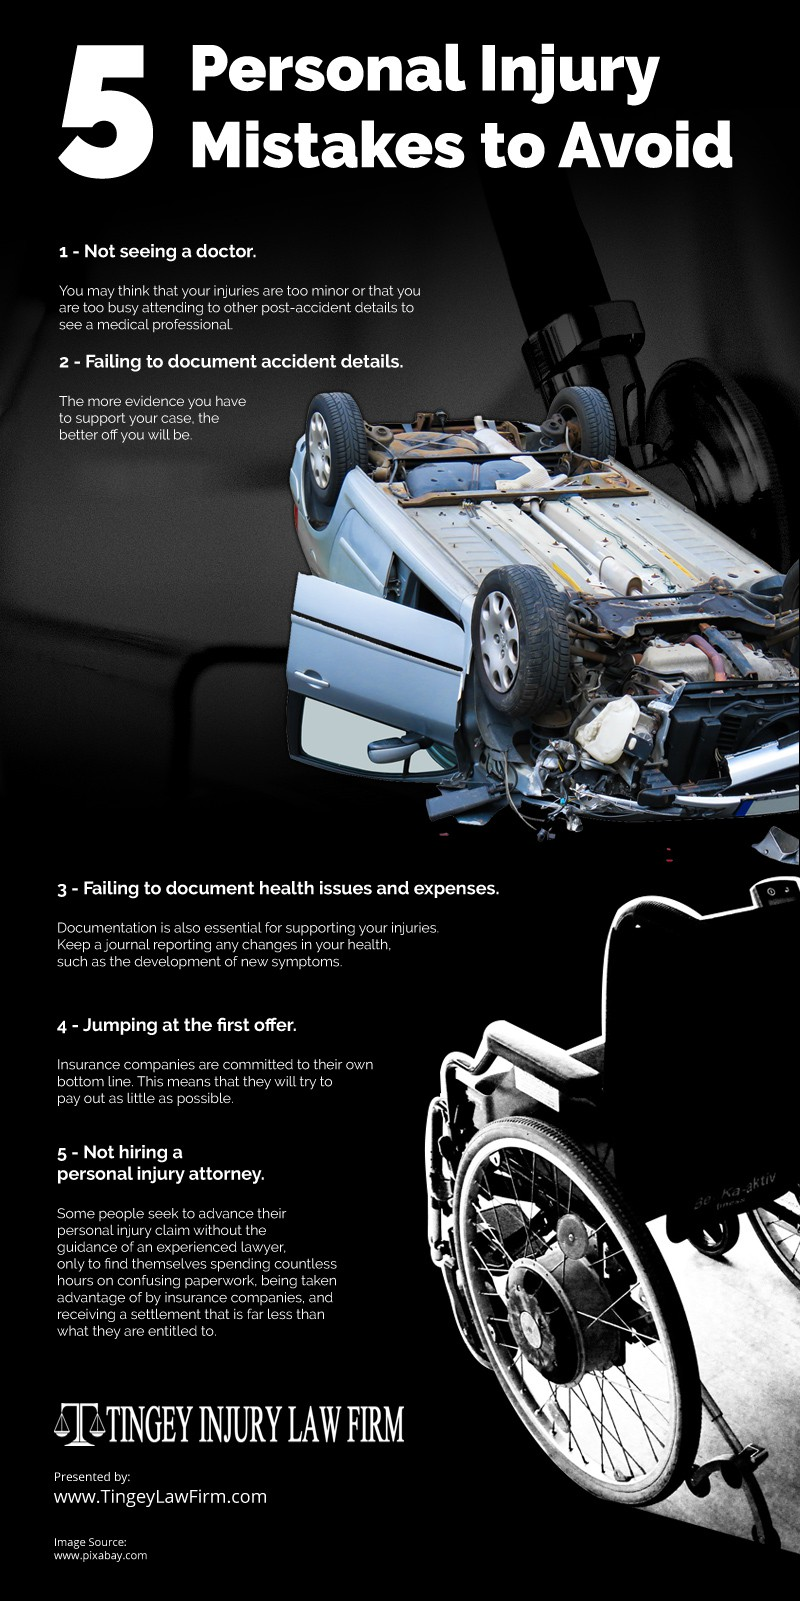 5 Personal Injury Mistakes to Avoid Infographic